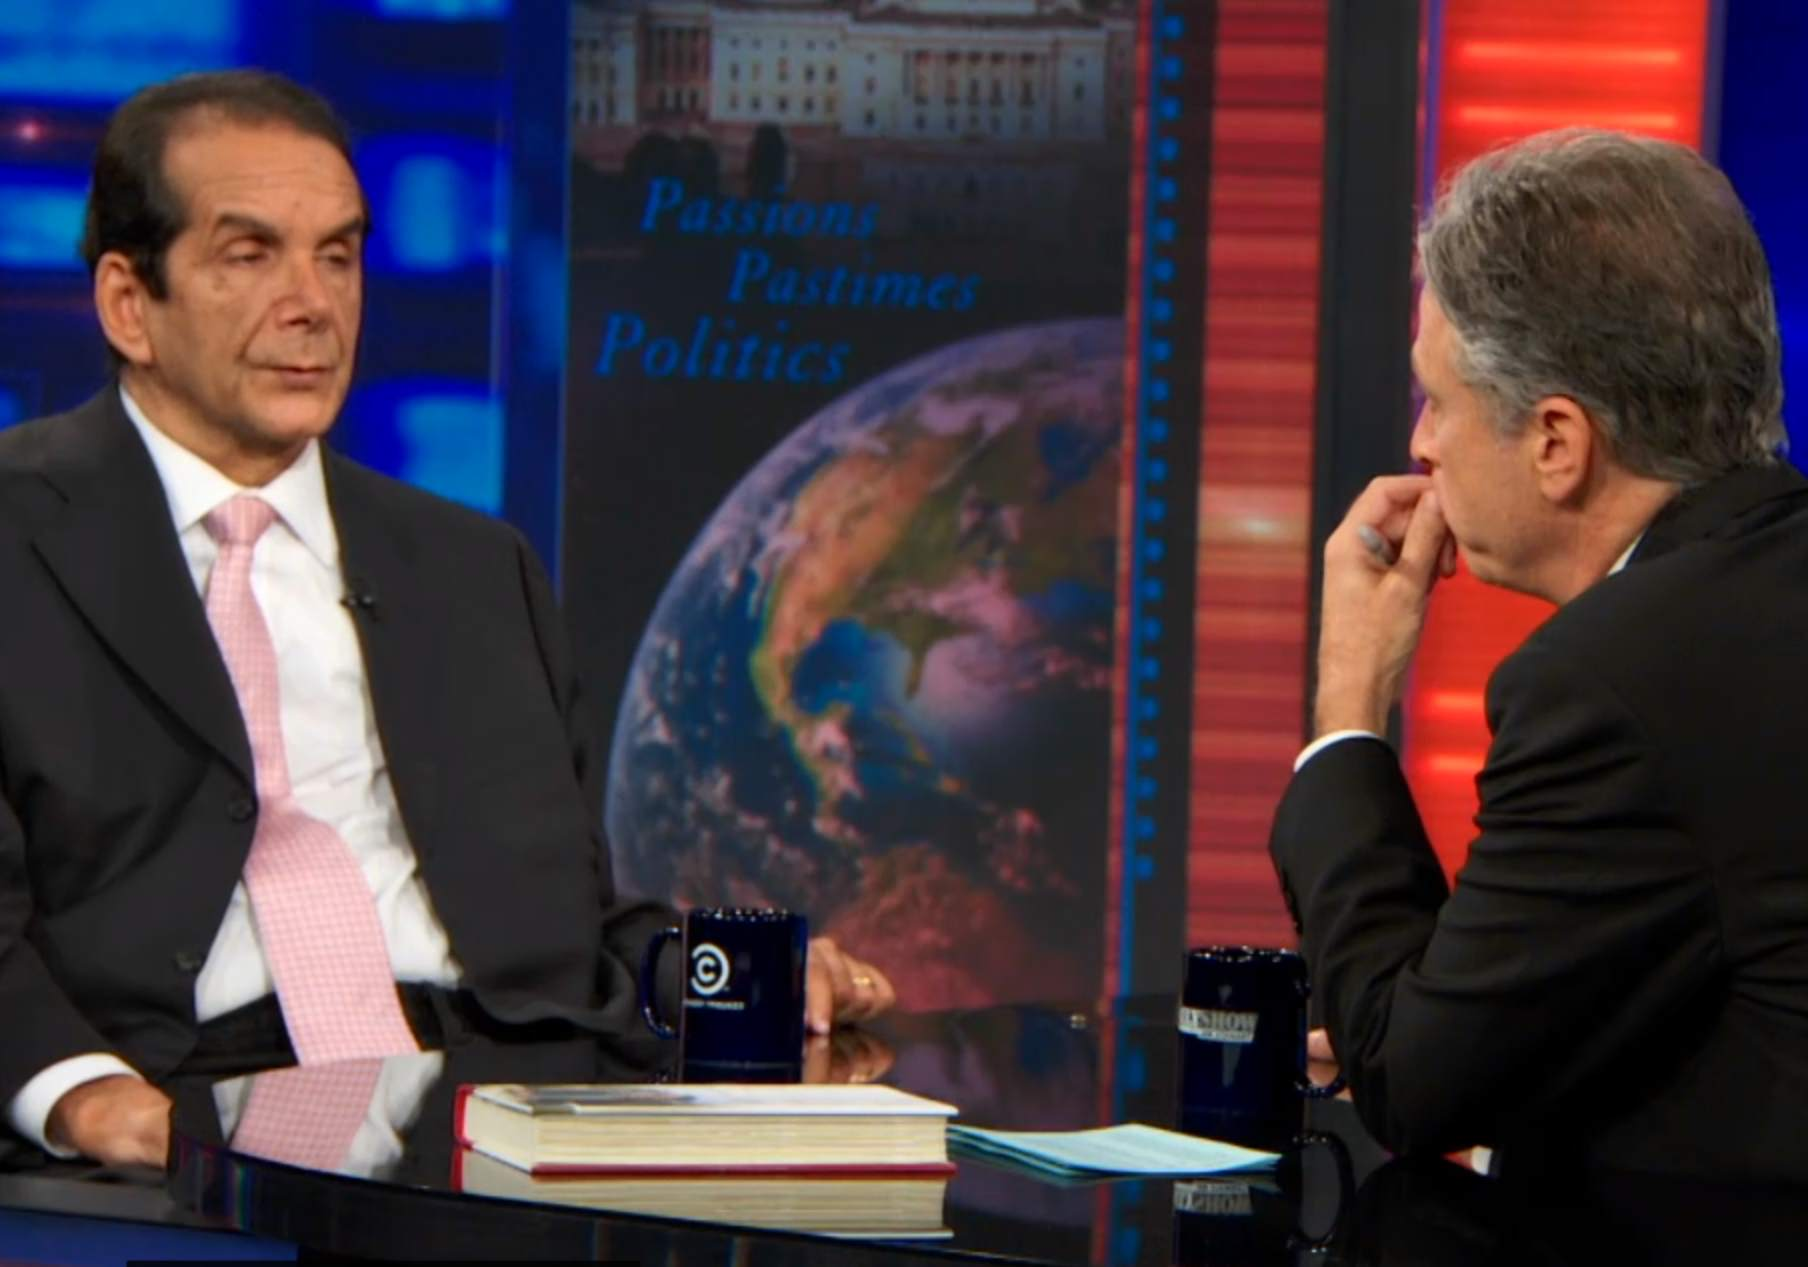 Review: Krauthammer vs. Stewart on the Daily Show